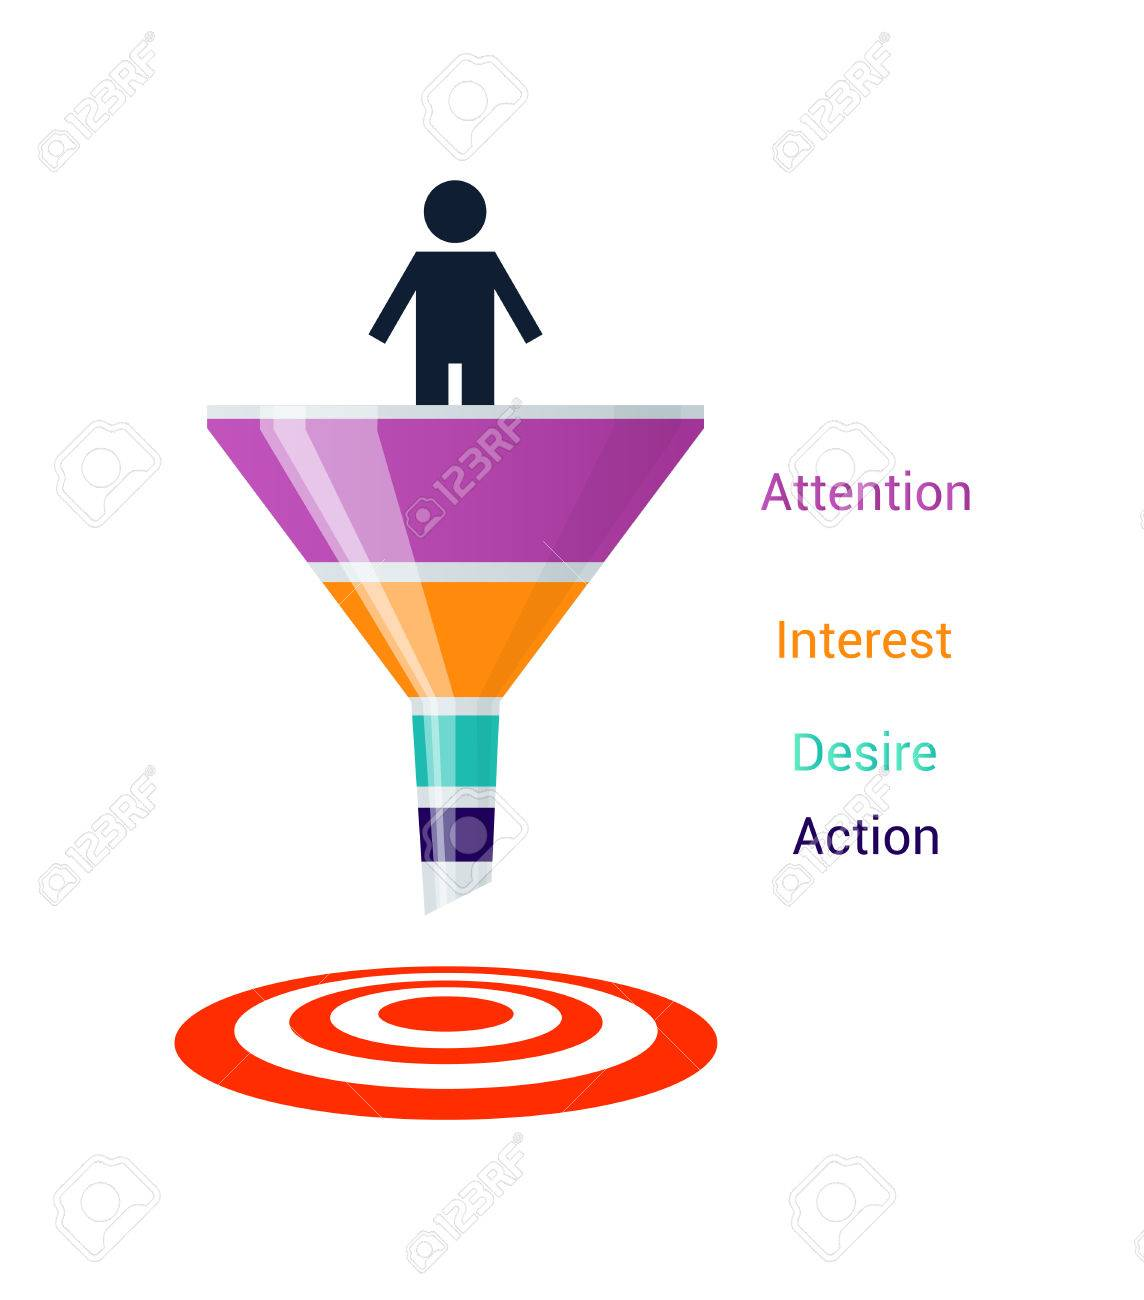 stages of the sales process attention interest desire and